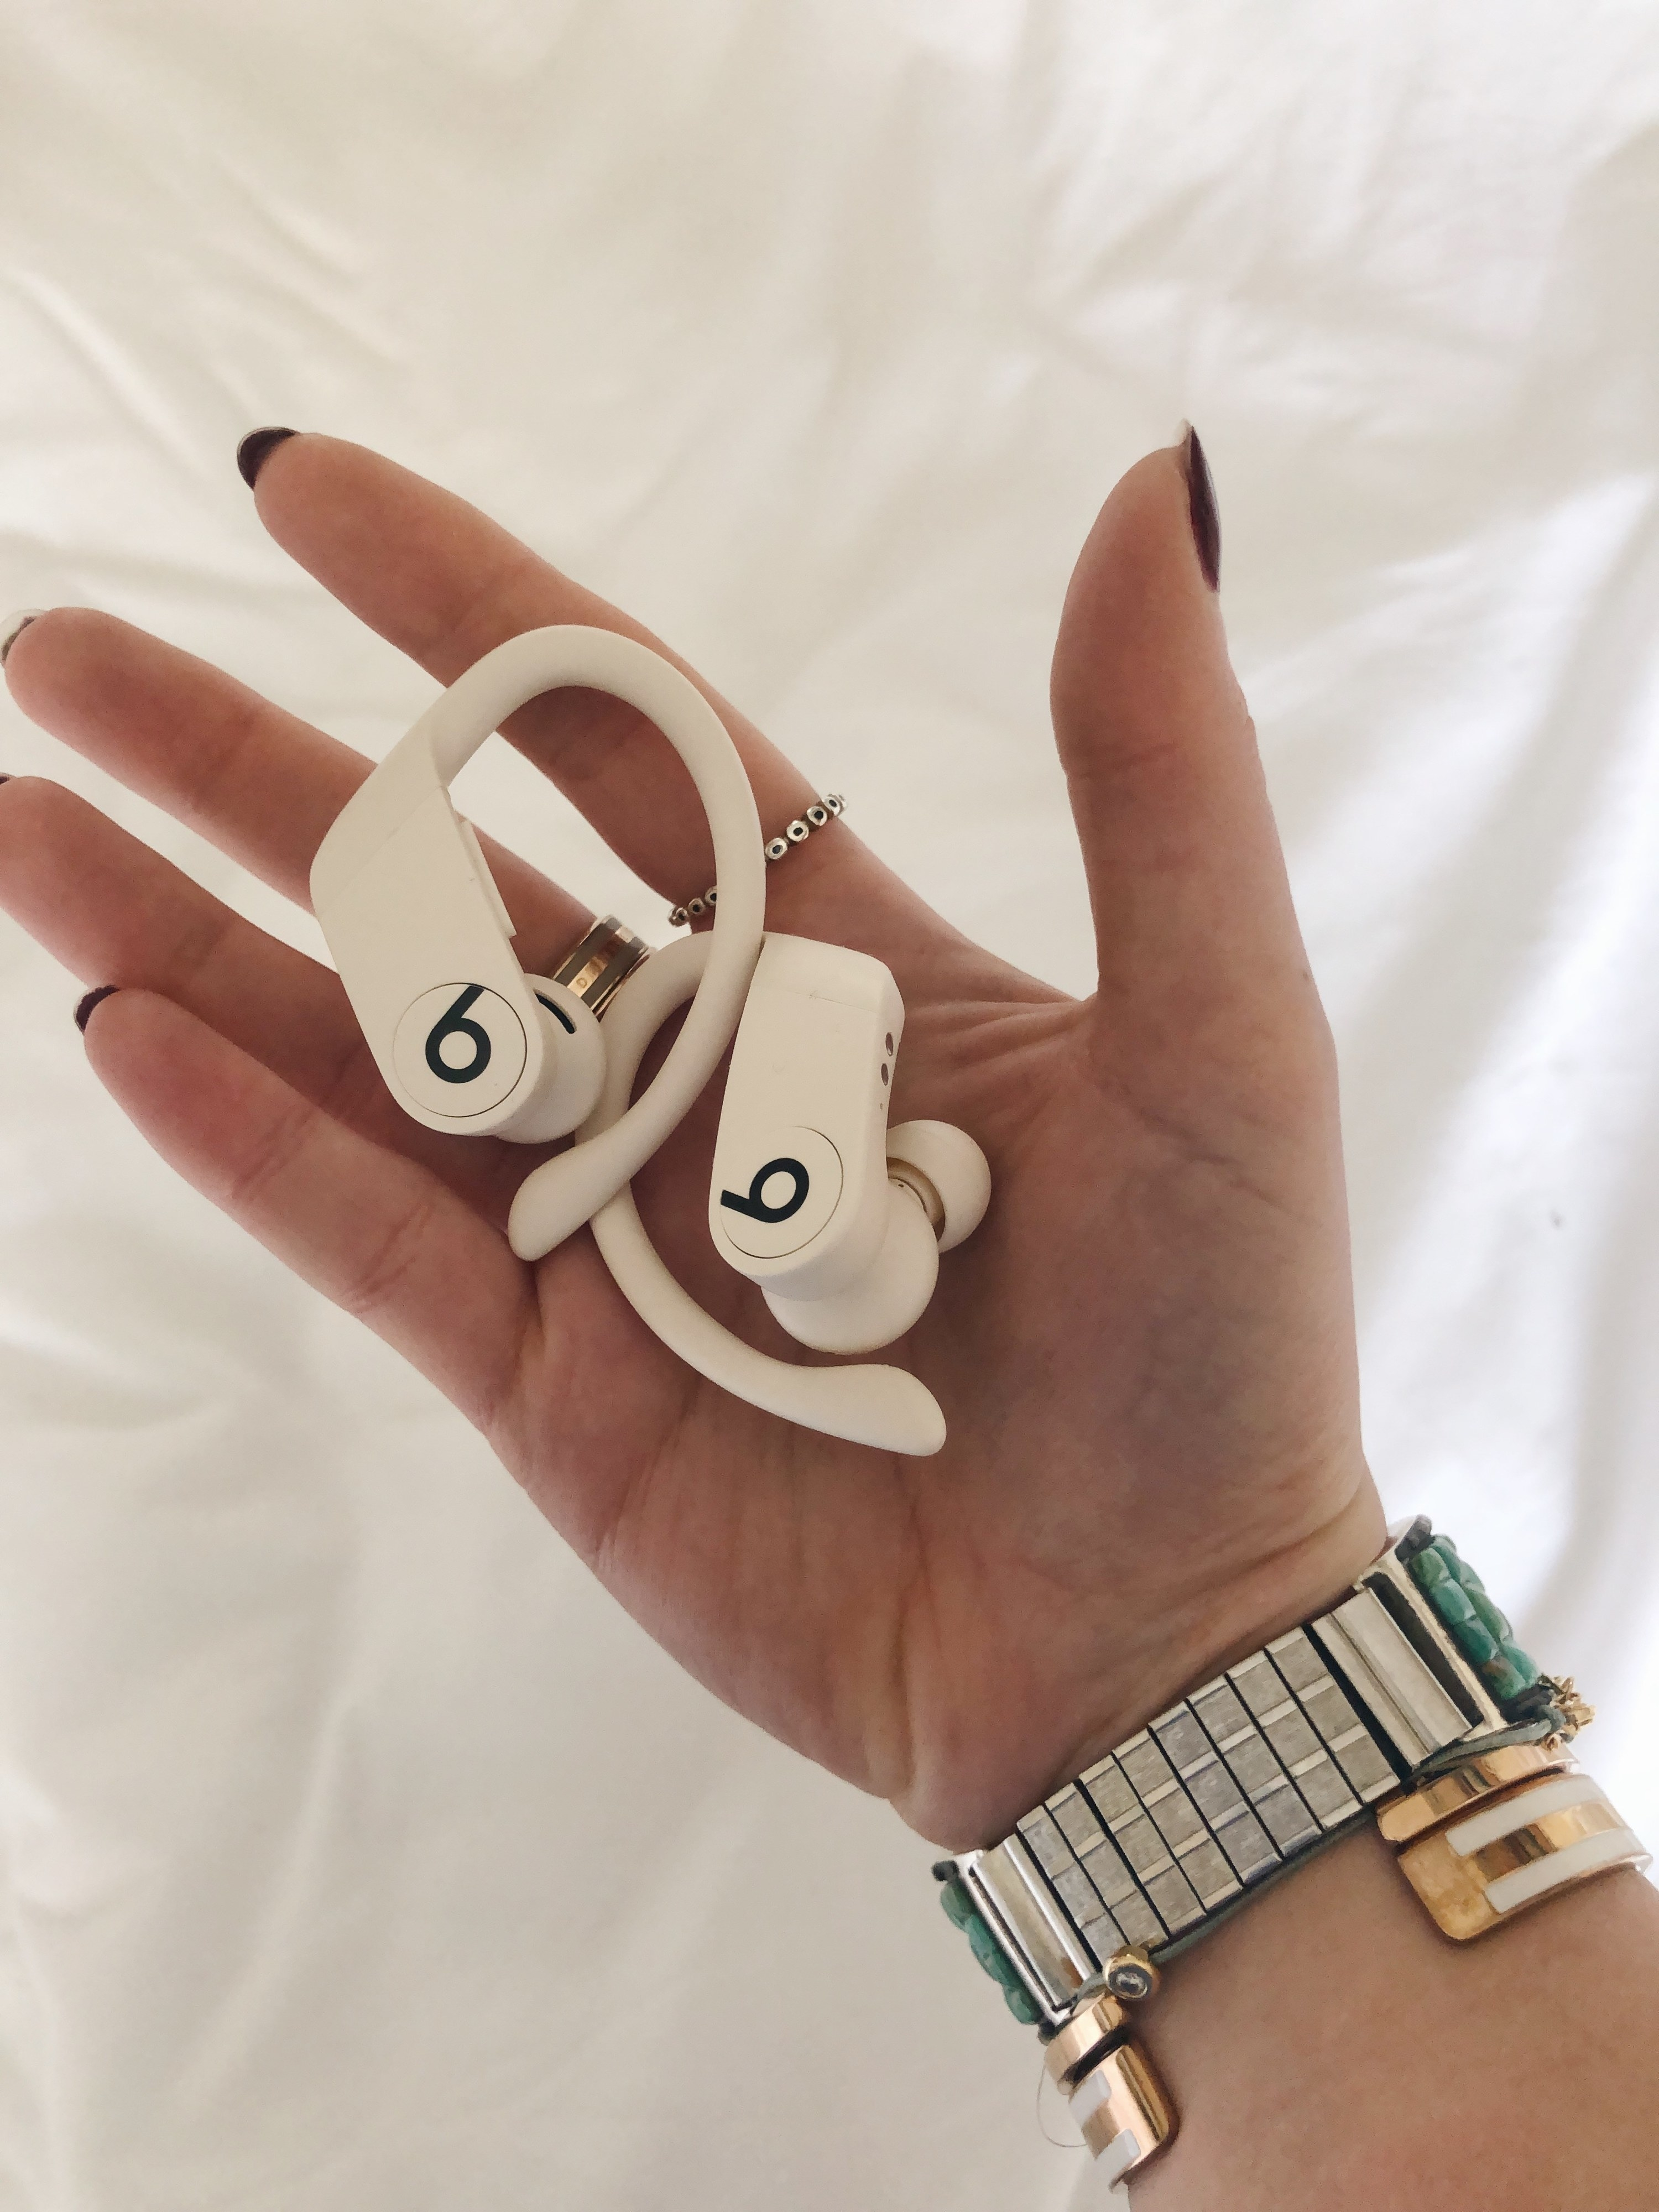 BuzzFeed Shopping reviewer holding the headphones in white